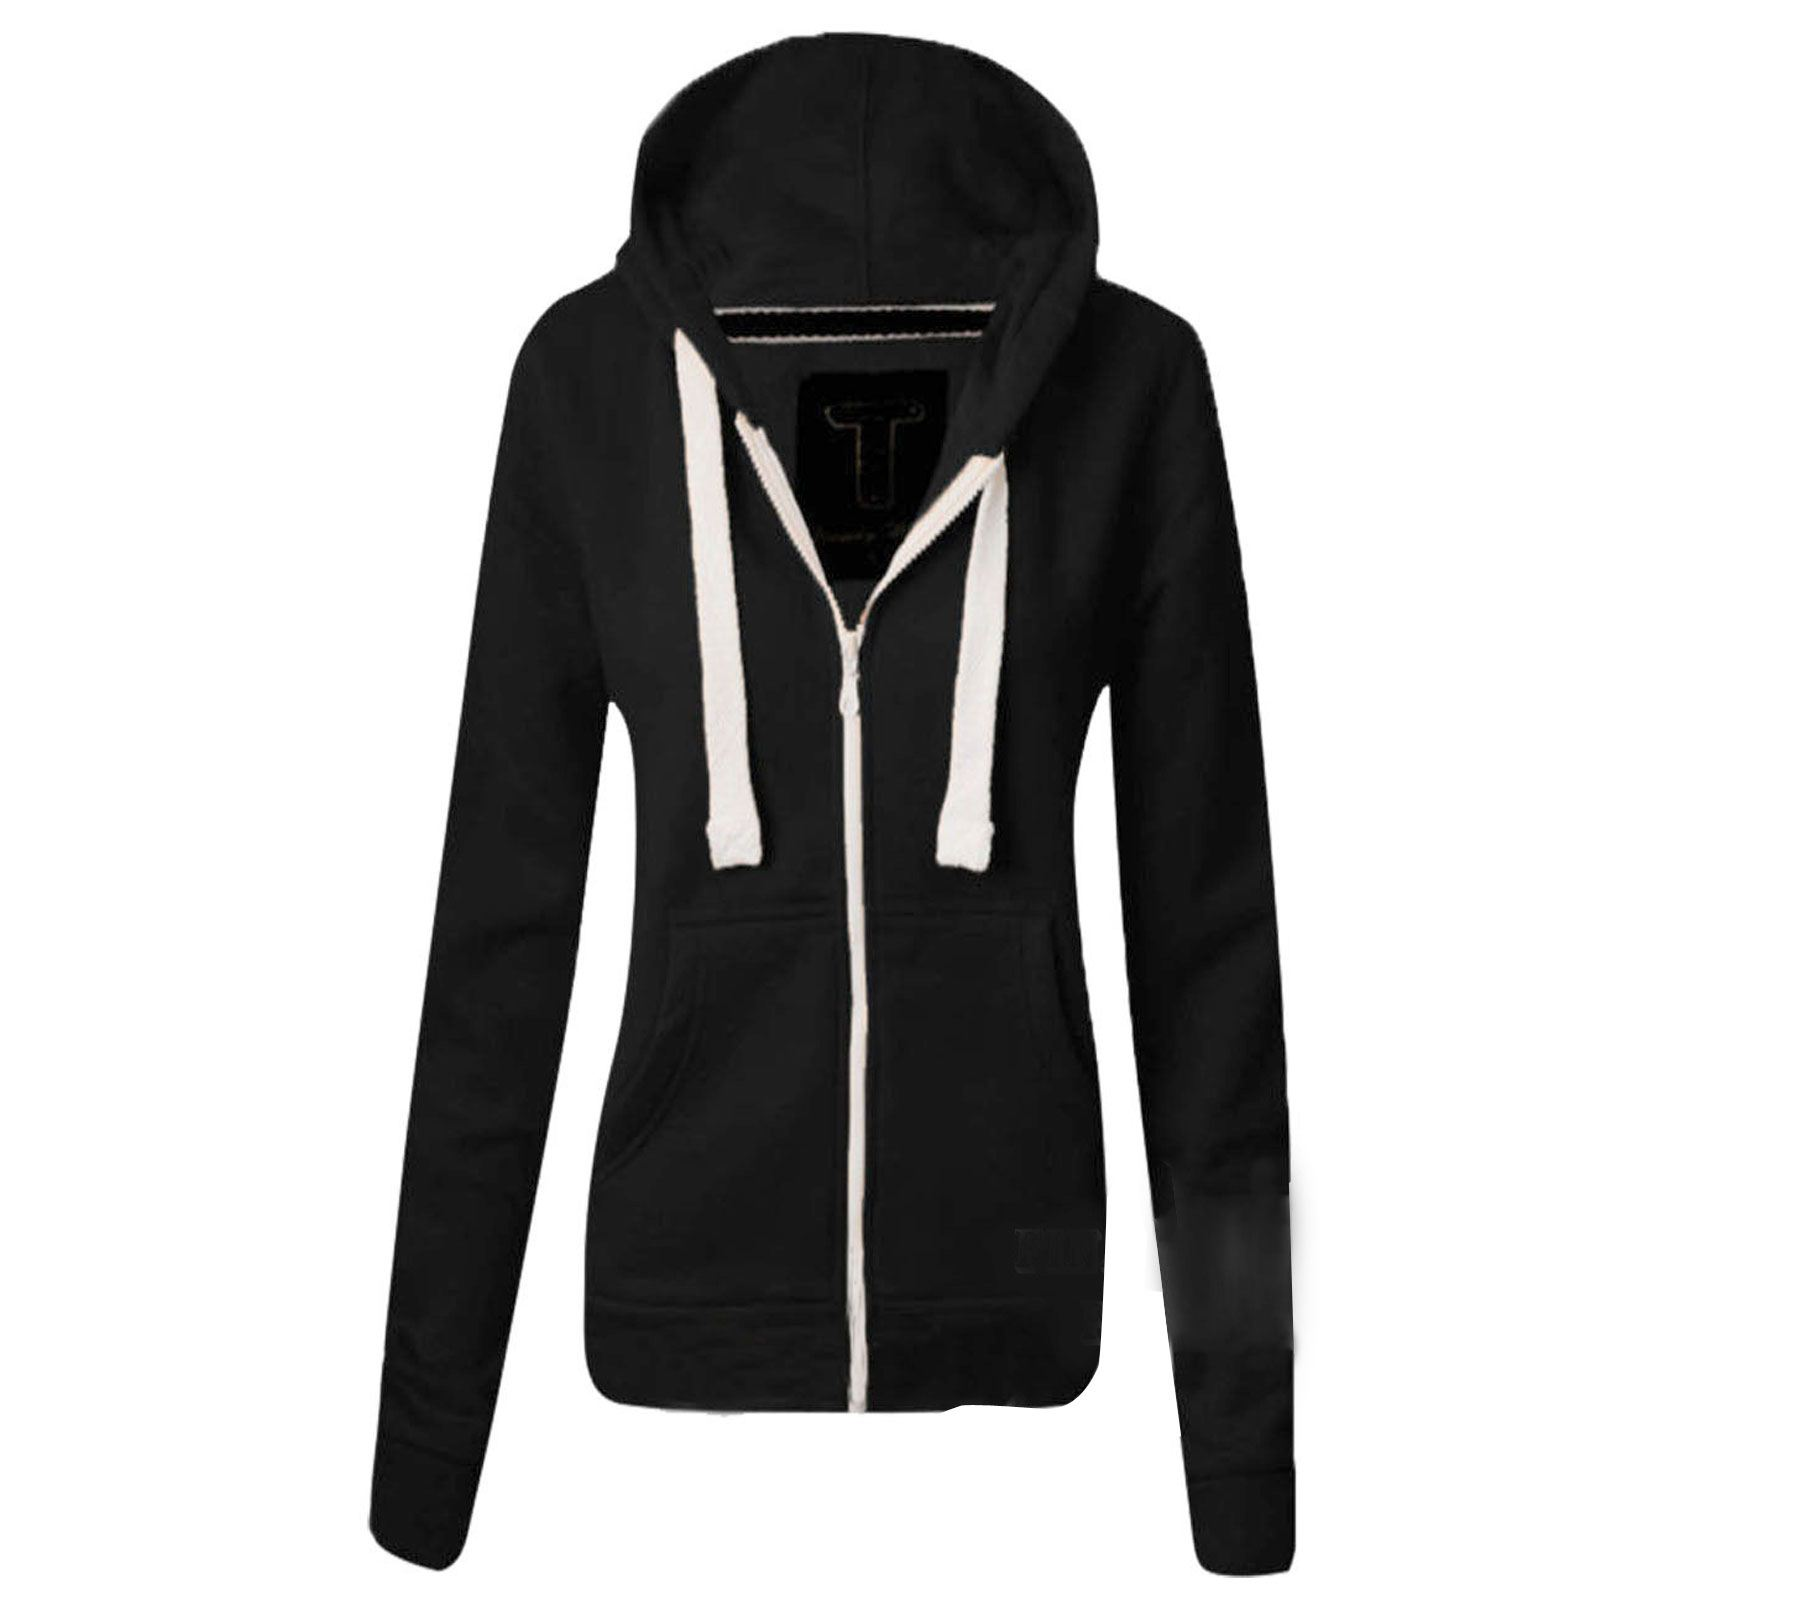 Fashion Ladies Hoodie Sweatshirt Sweater Womens Jacket Coat | Fashion